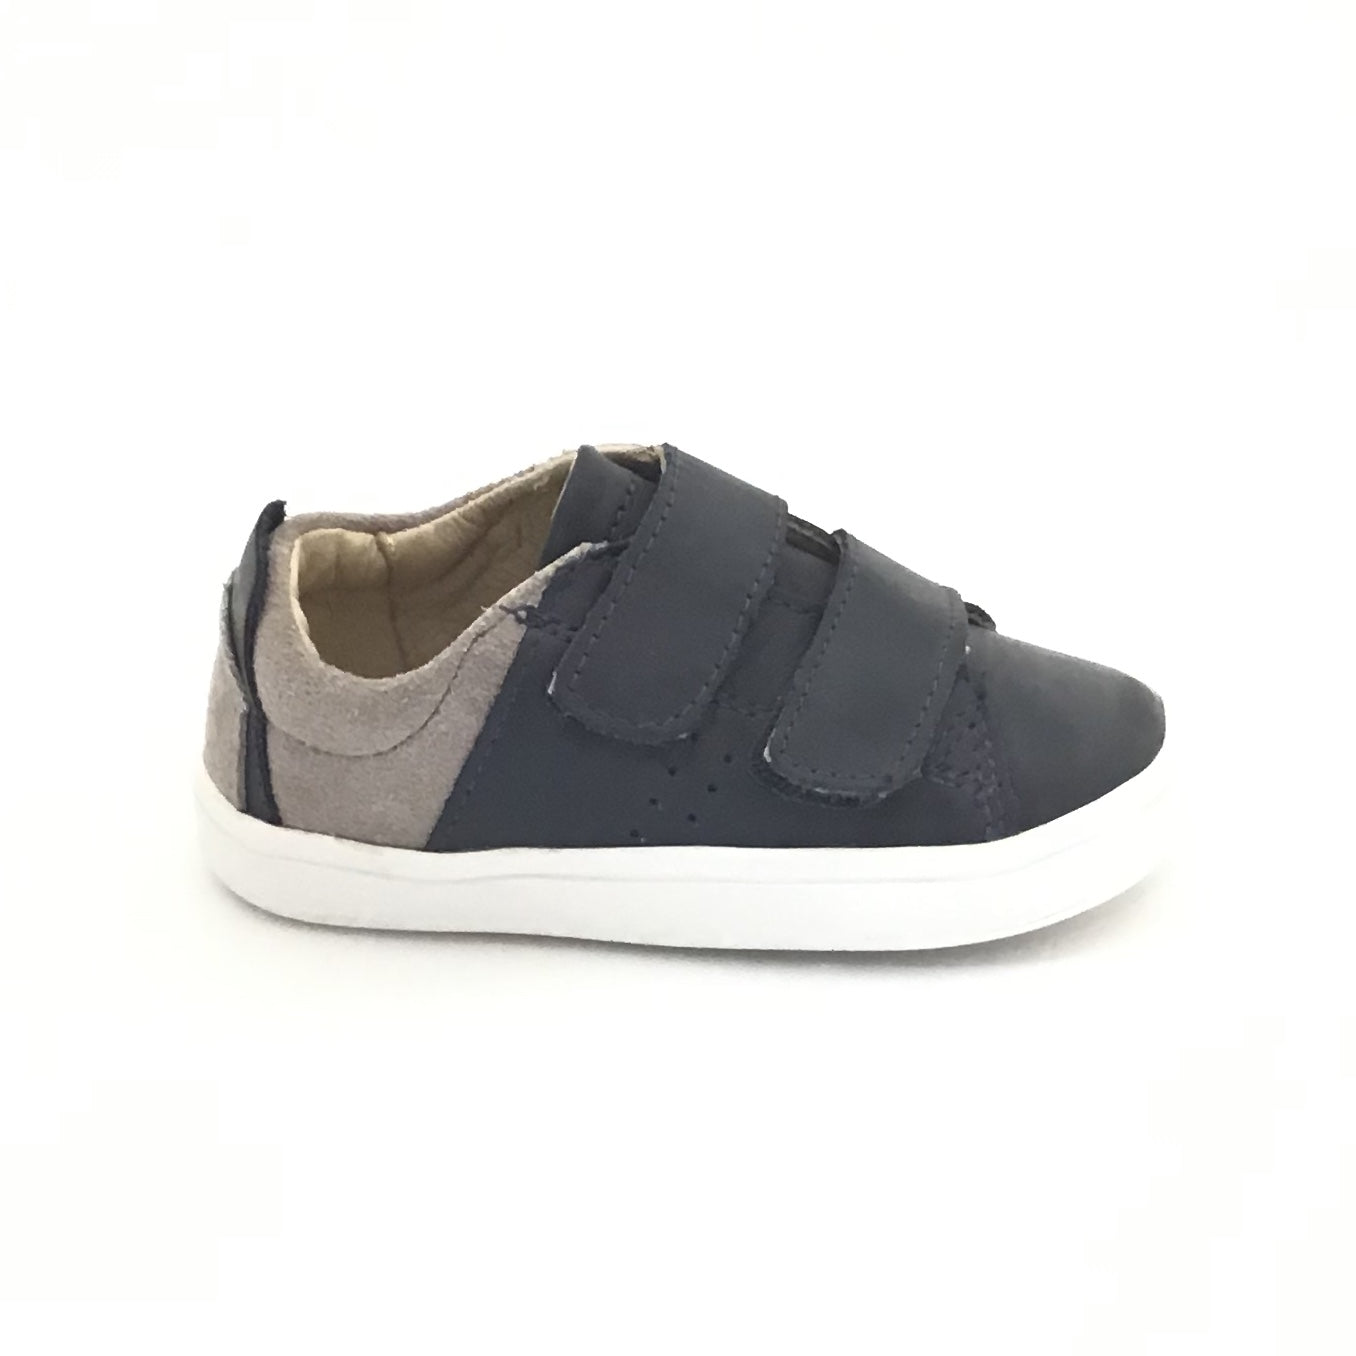 Old Soles Grey and Navy Sneaker with Double Velcro